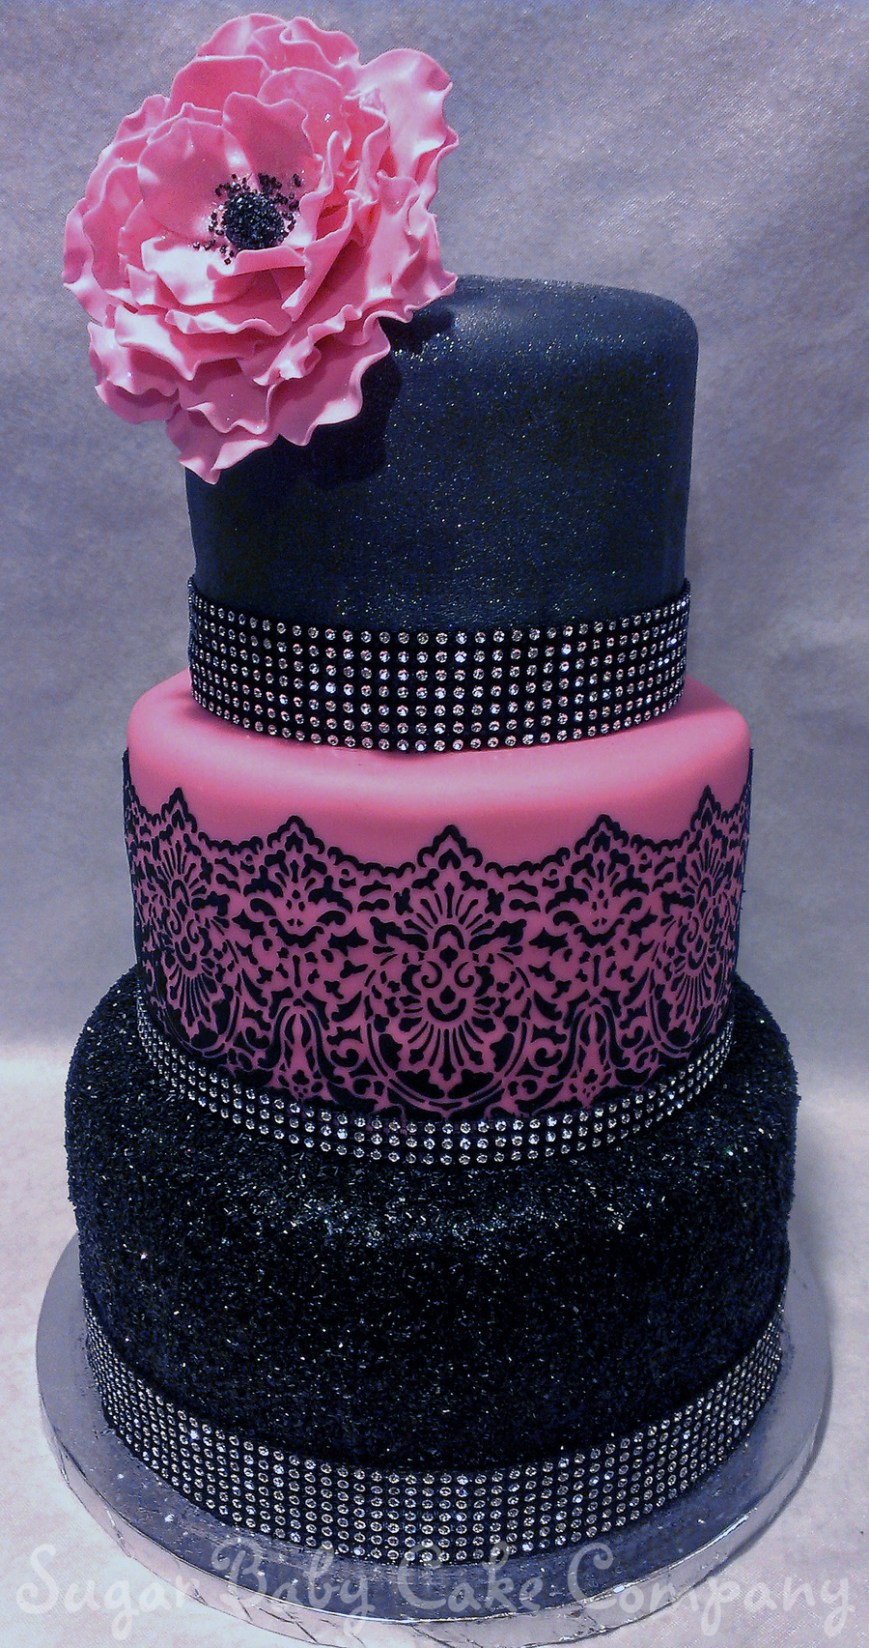 Bling Birthday Cakes Sexy Bling 40th Birthday Cake Cakecentral